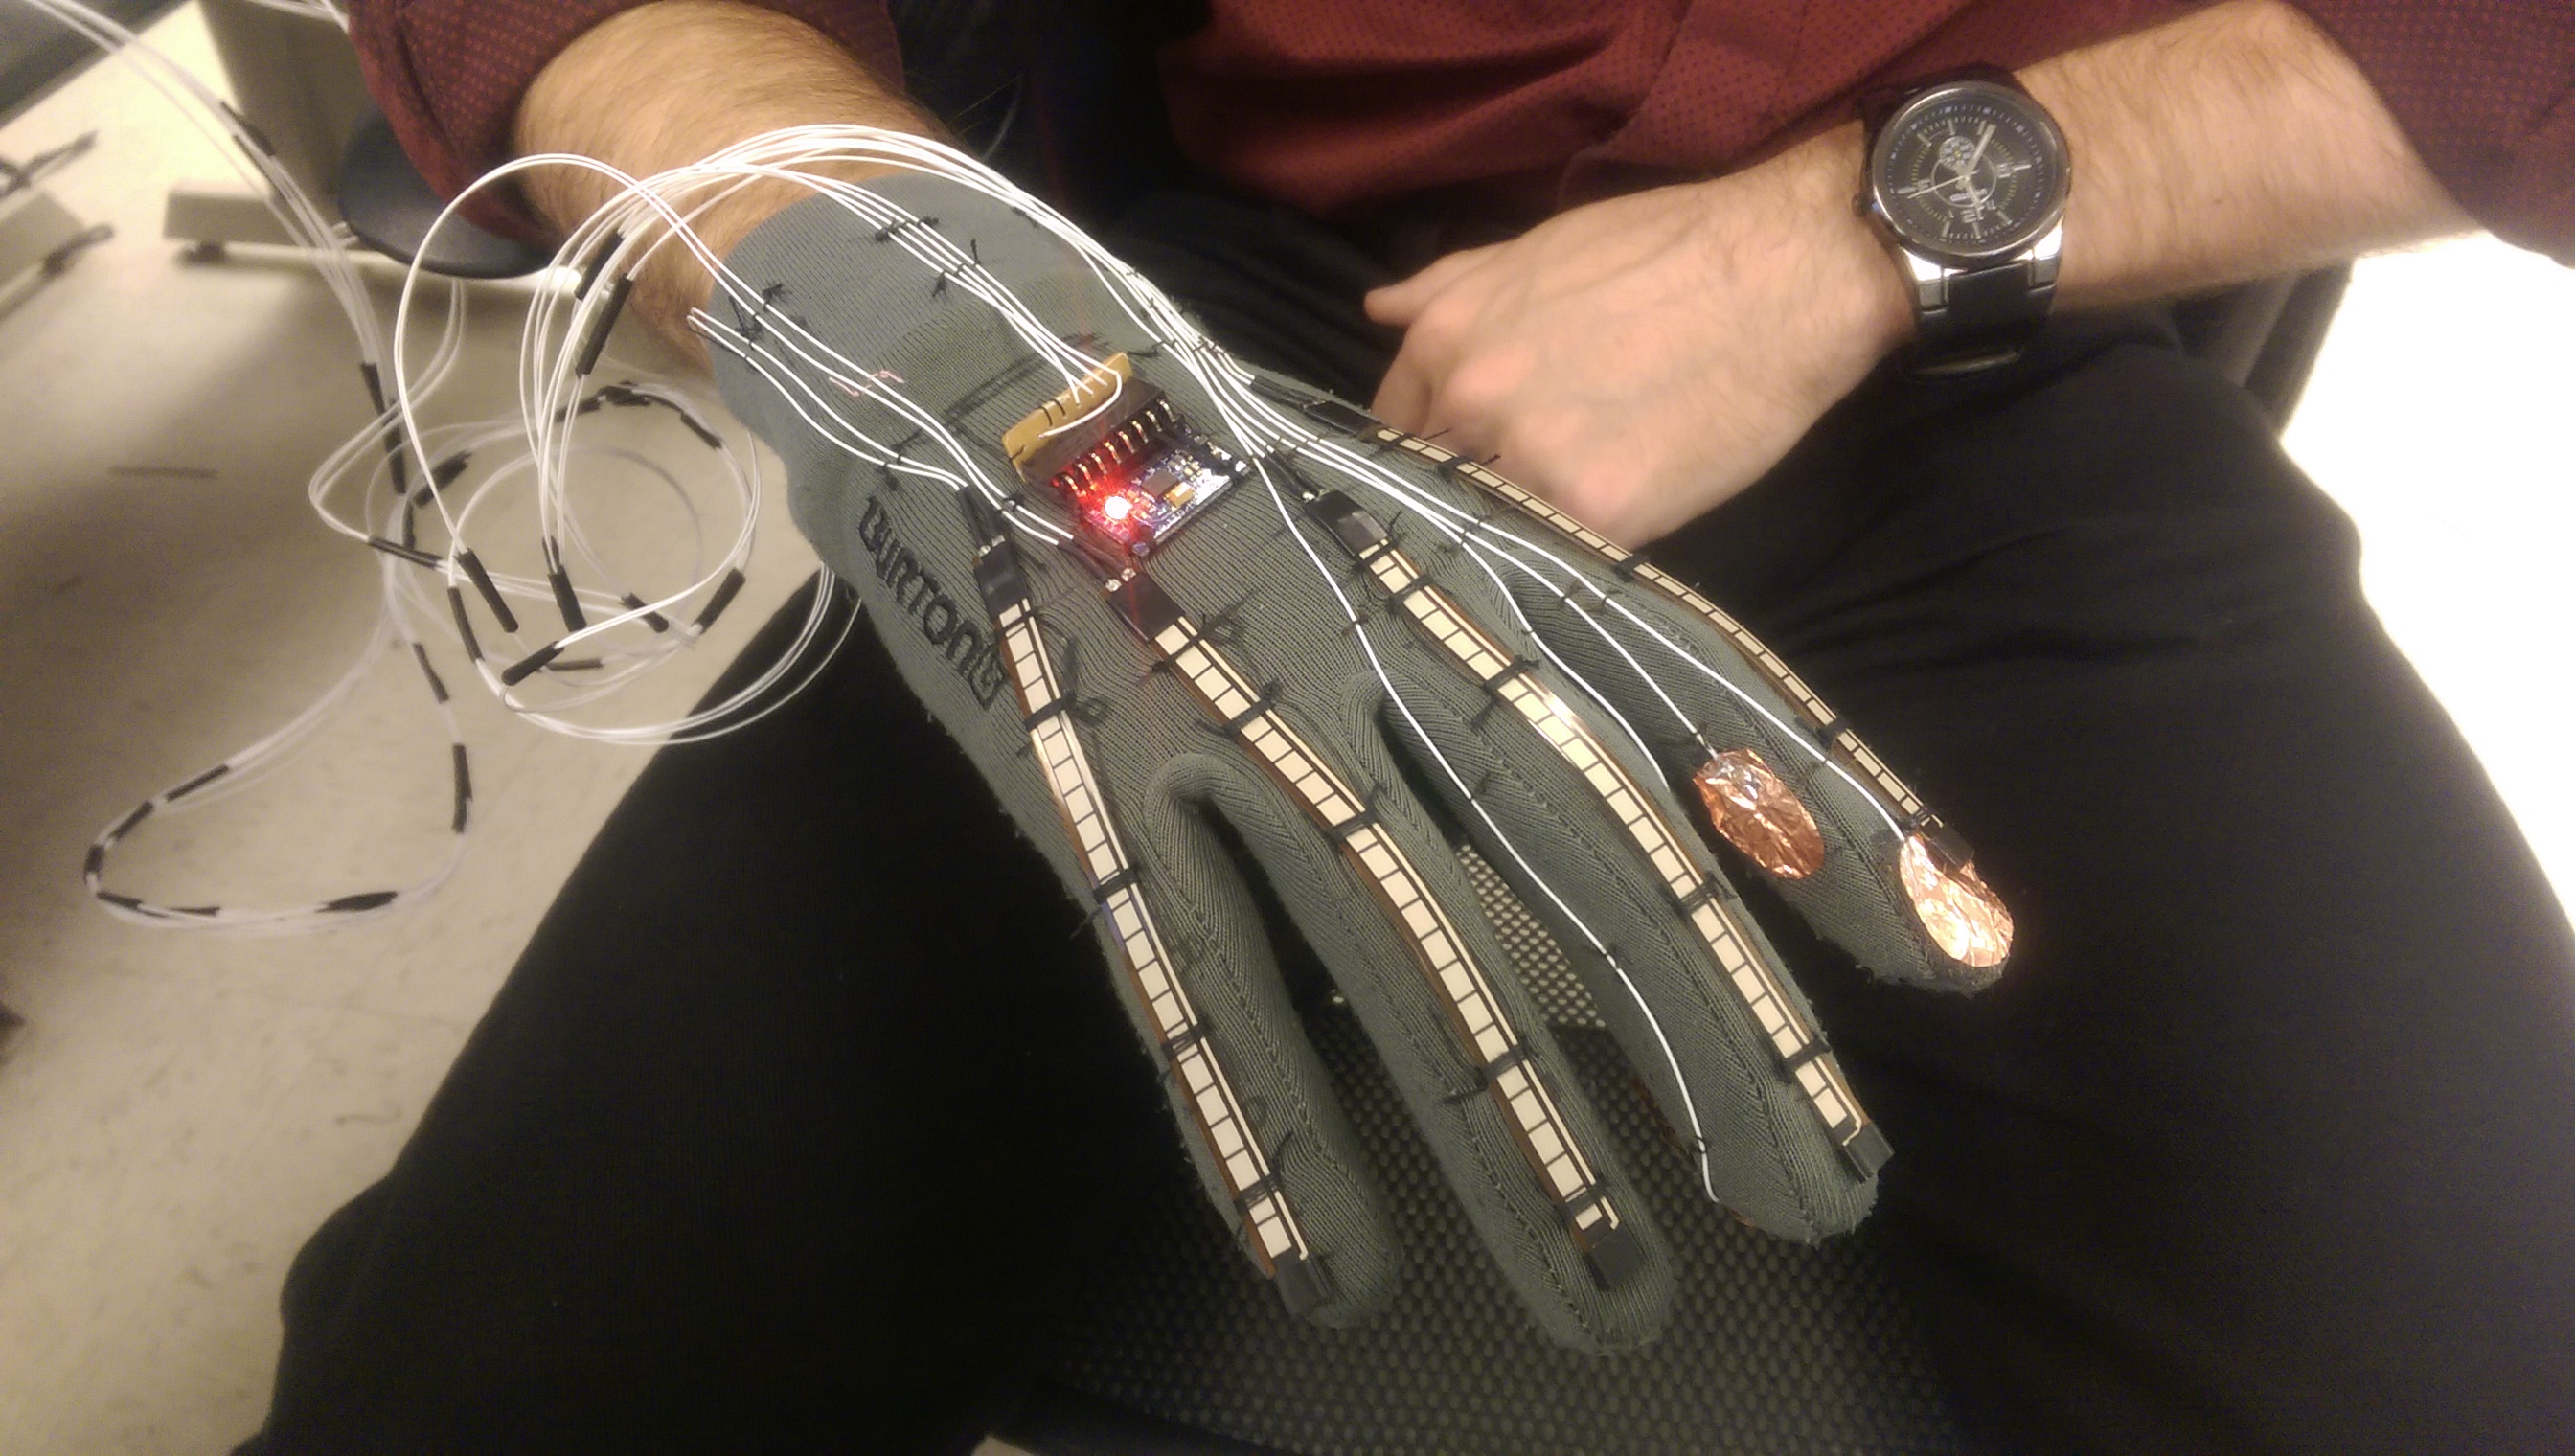 futuristic-smart-glove-can-translate-sign-language-into-text-and-speech-5